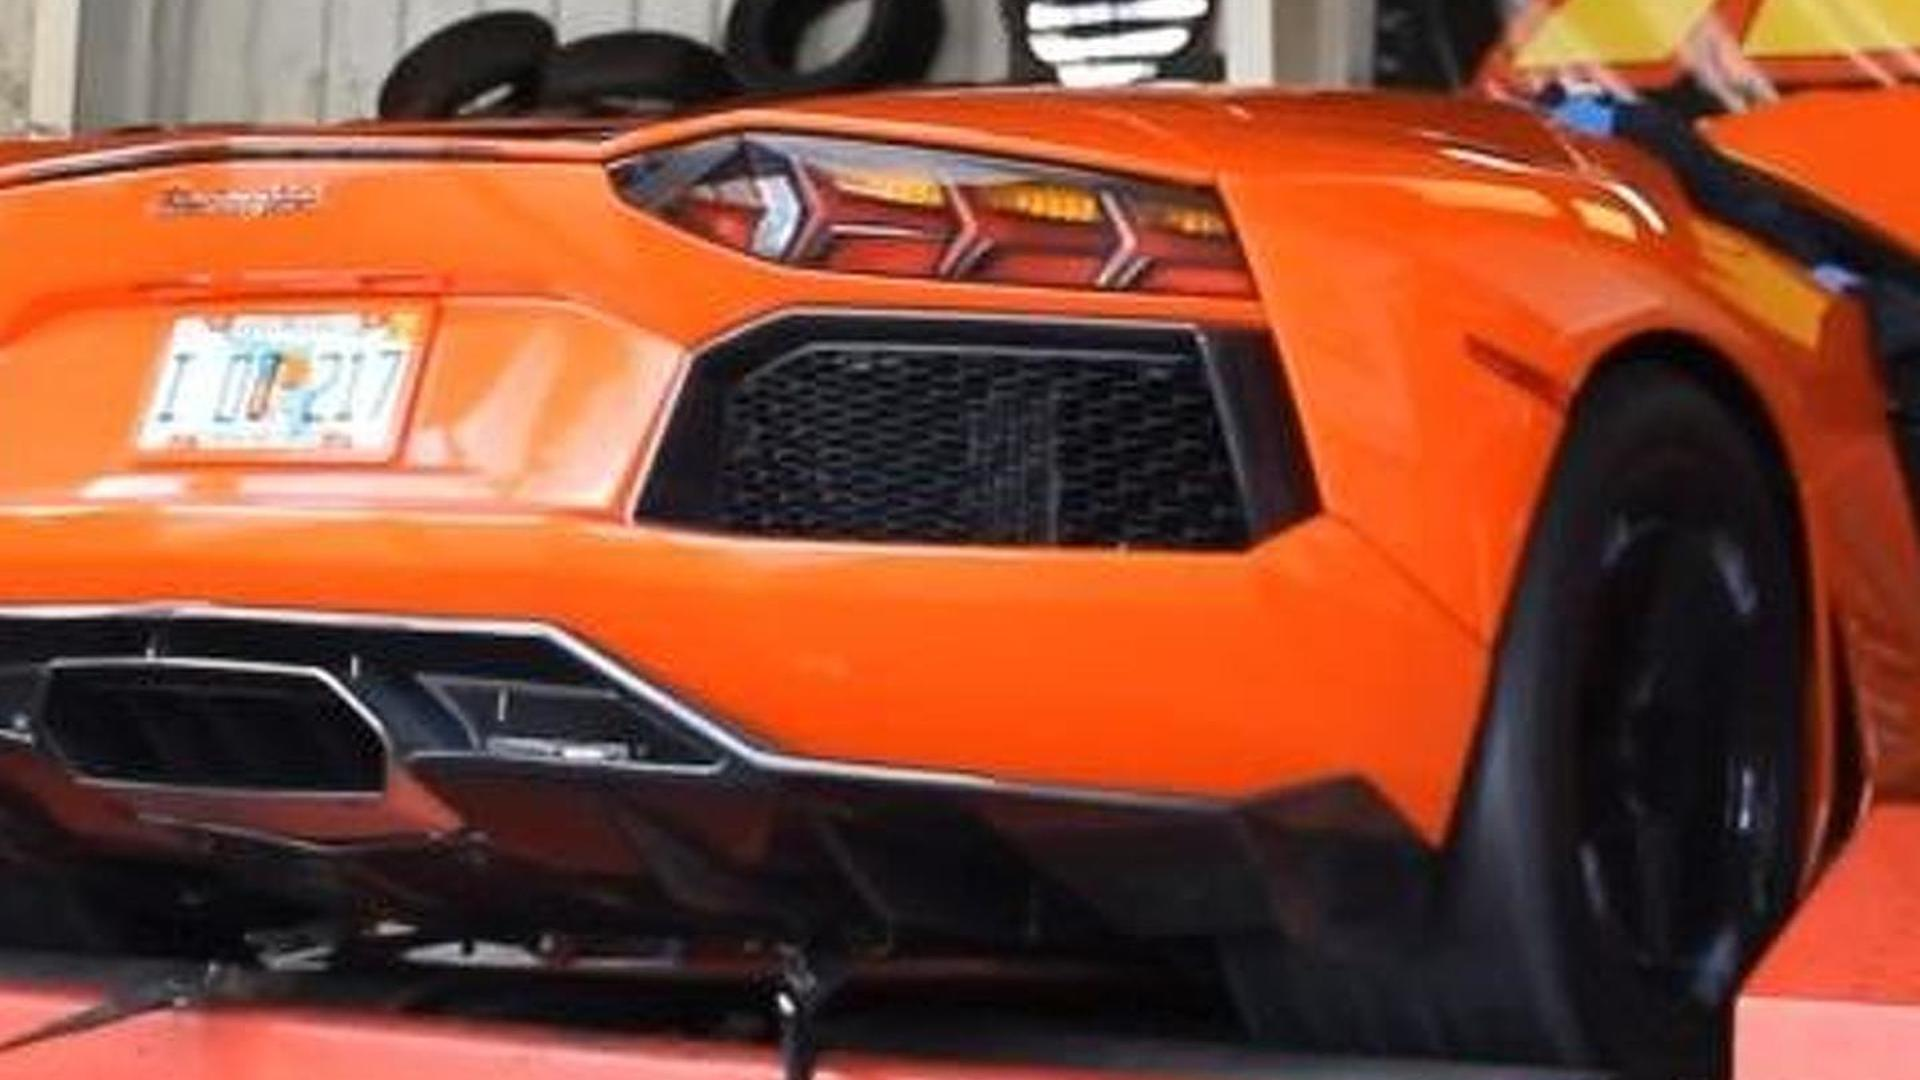 700 WHP nitrous Lamborghini Aventador hits the dyno [video]